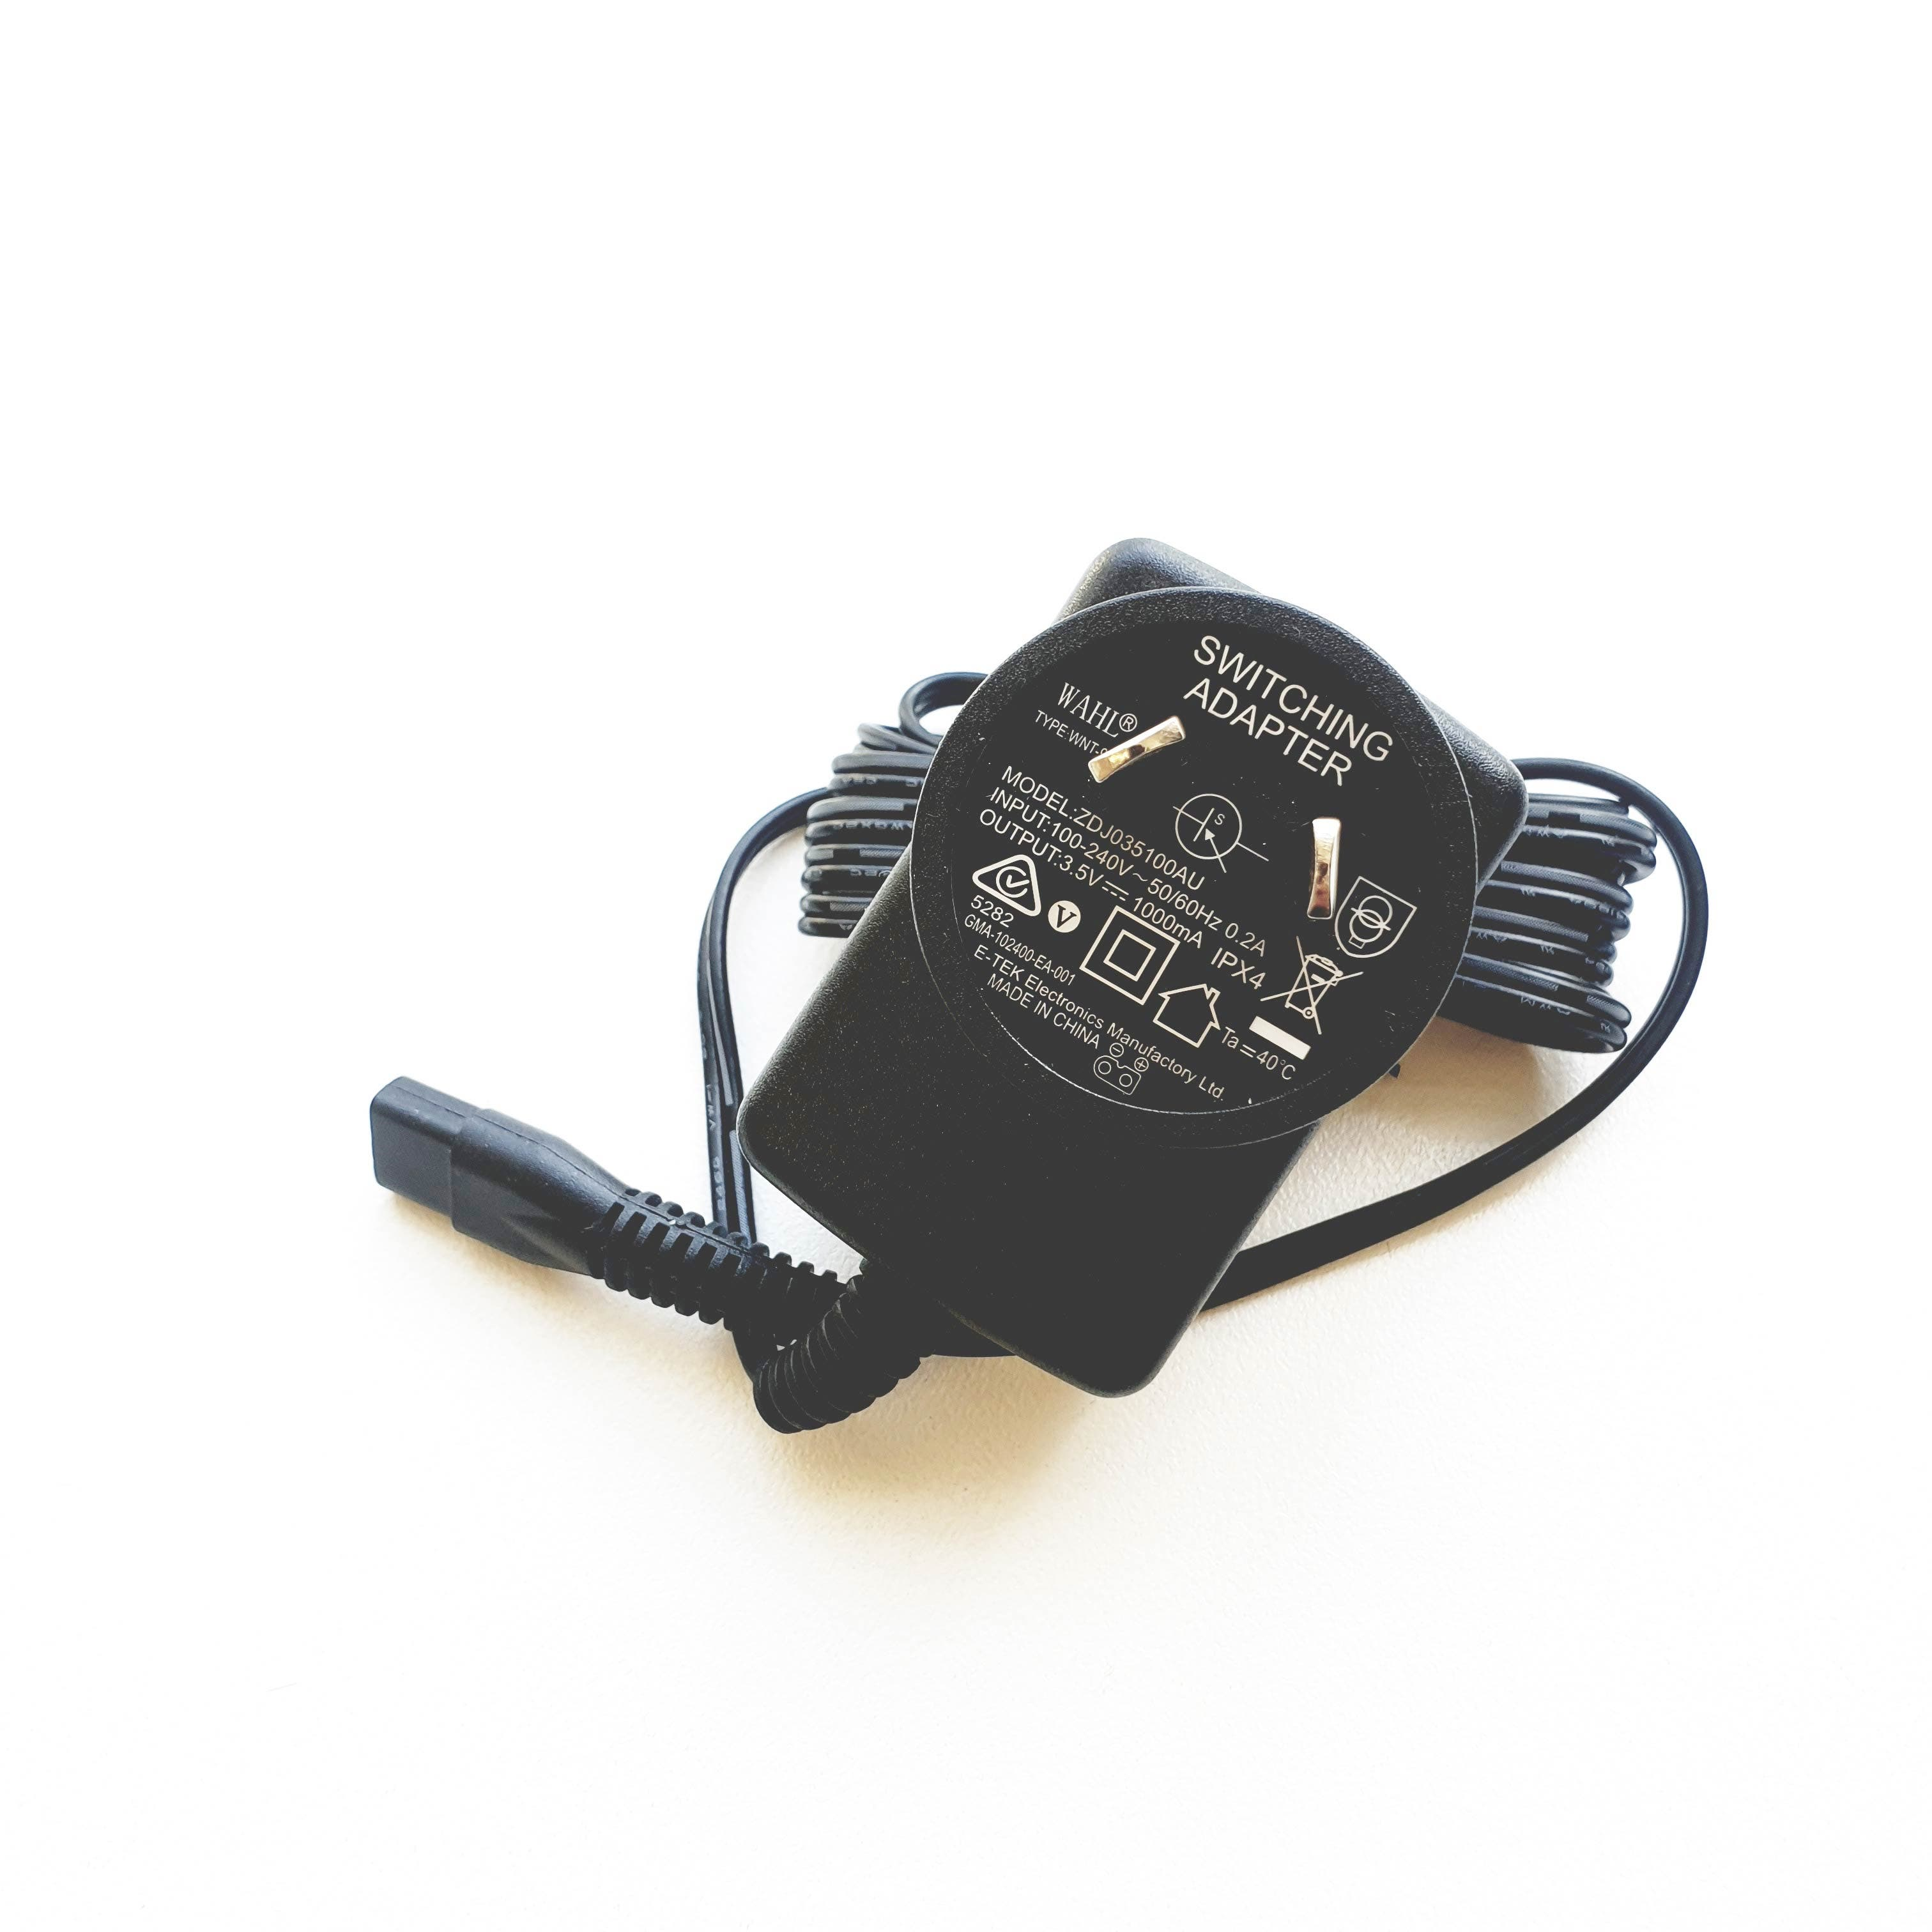 WAHL Replacement CHARGER (Model ZDJ035100AU) Female for Color Pro Cordless